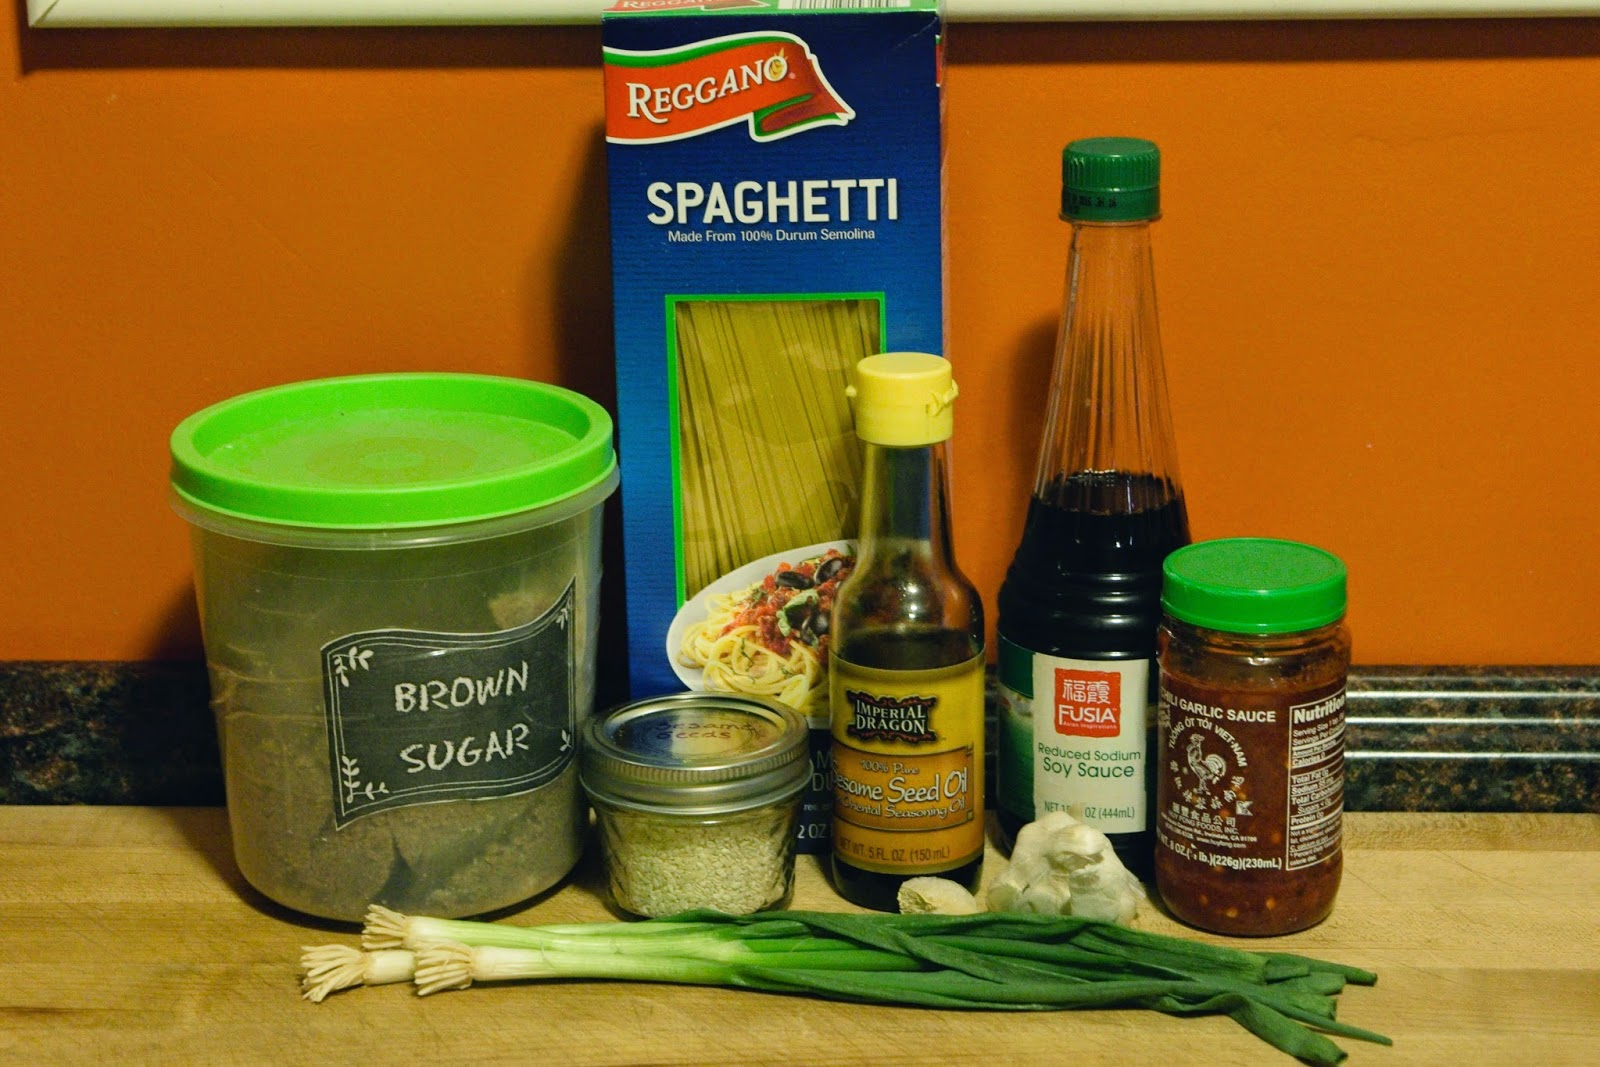 The ingredients used for making the homemade sesame noodles.